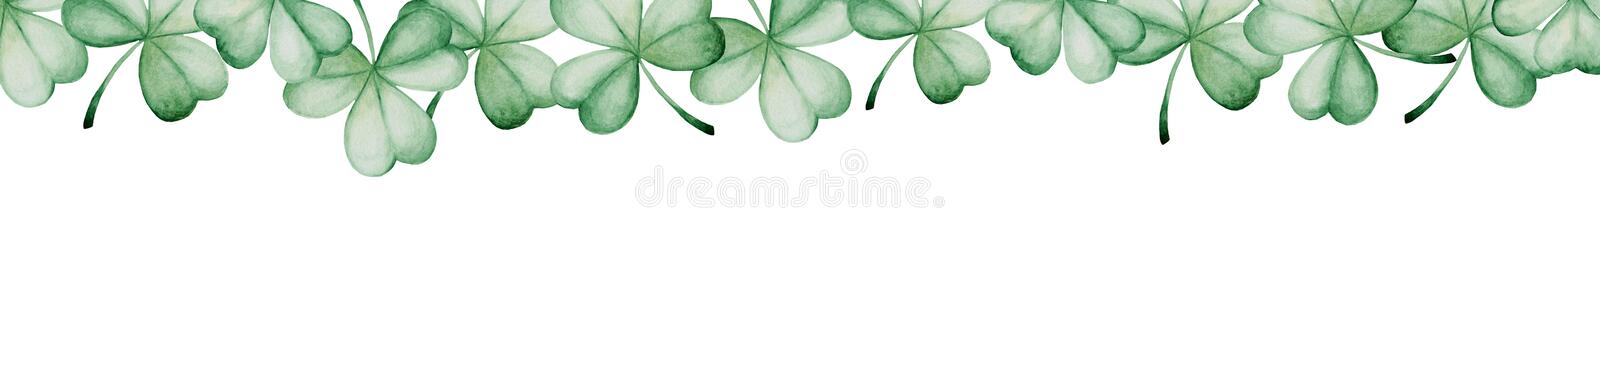 Watercolor Saint Patrick`s Day banner. Clover ornament. For design, print or background stock illustration